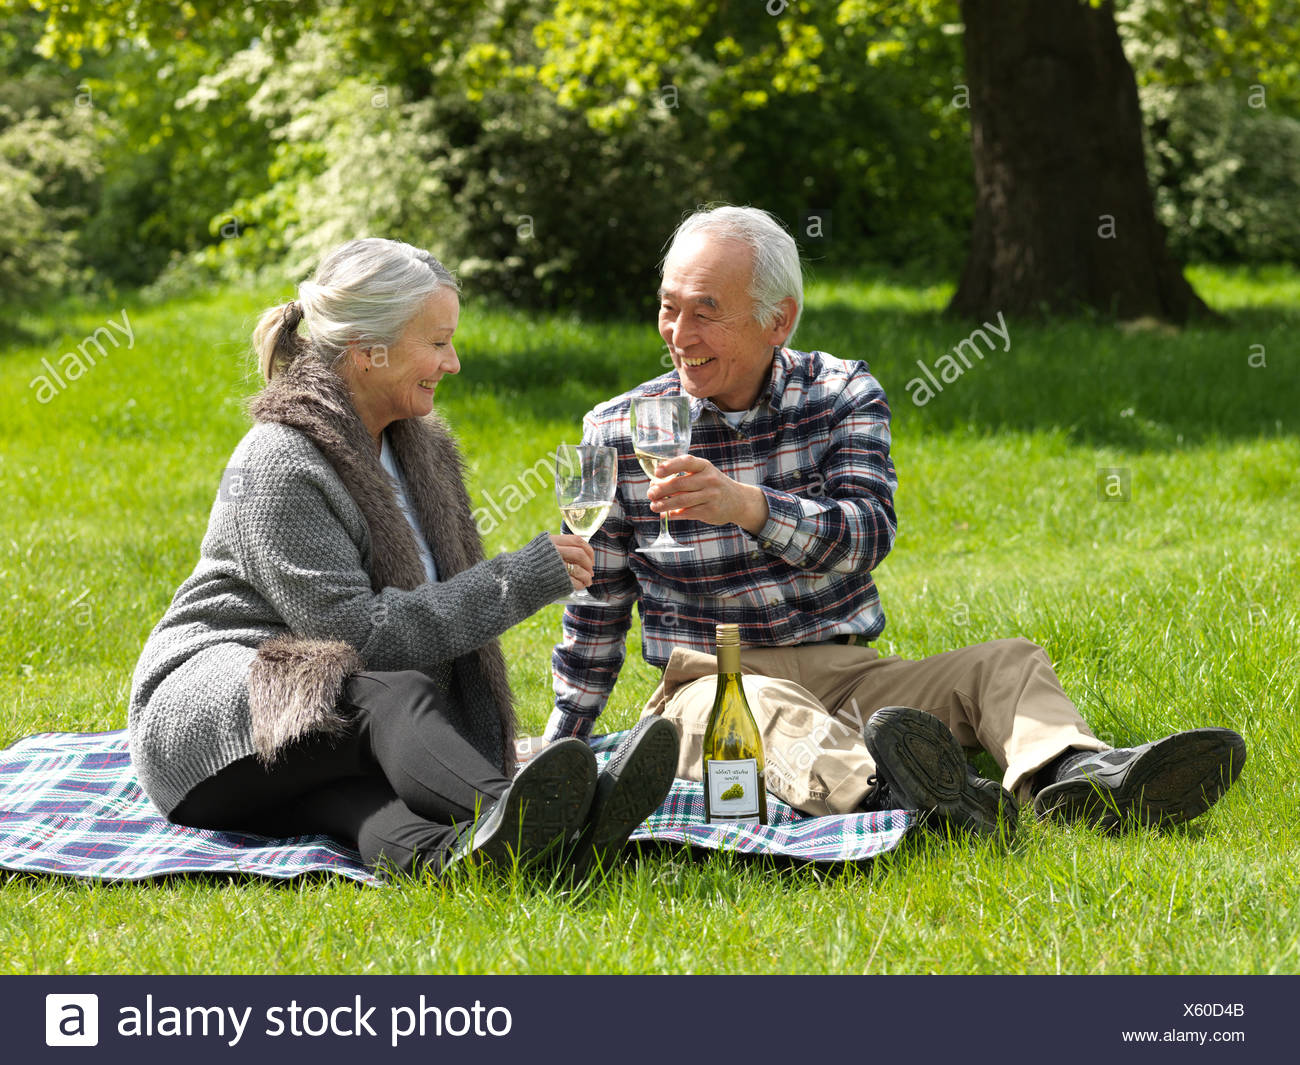 Older couple toasting each other - Stock Image